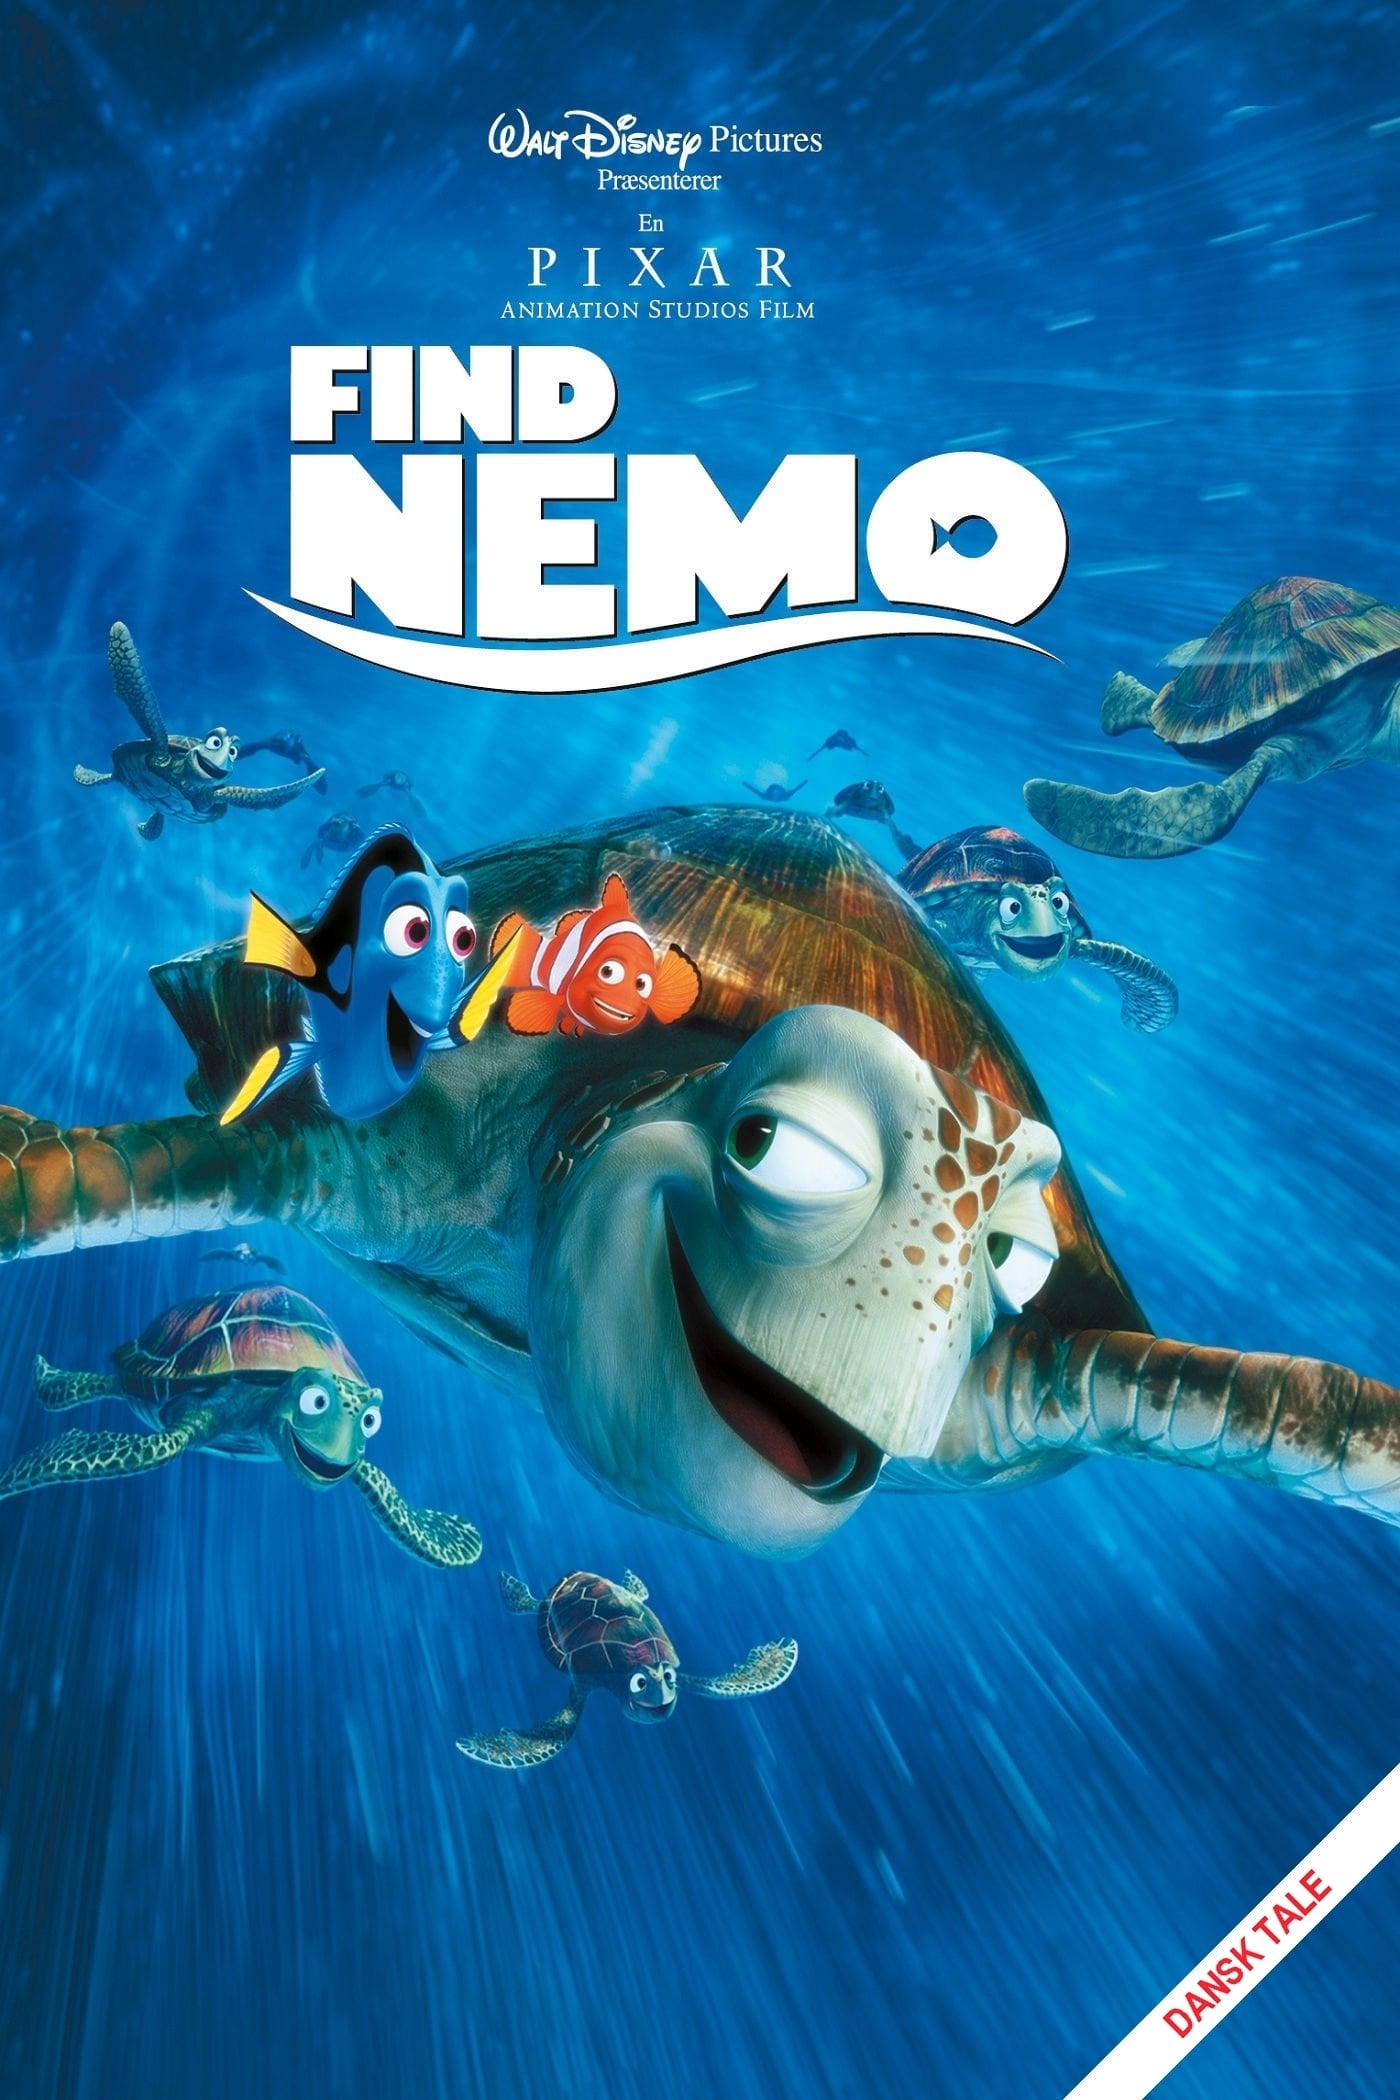 finding nemo movie review 020315 Finding nemo 3d movie review: critics rating: 4 stars, click to give your rating/review,watch finding nemo (in 3d) if you have never seen it before watch finding nemo once again – this ti.